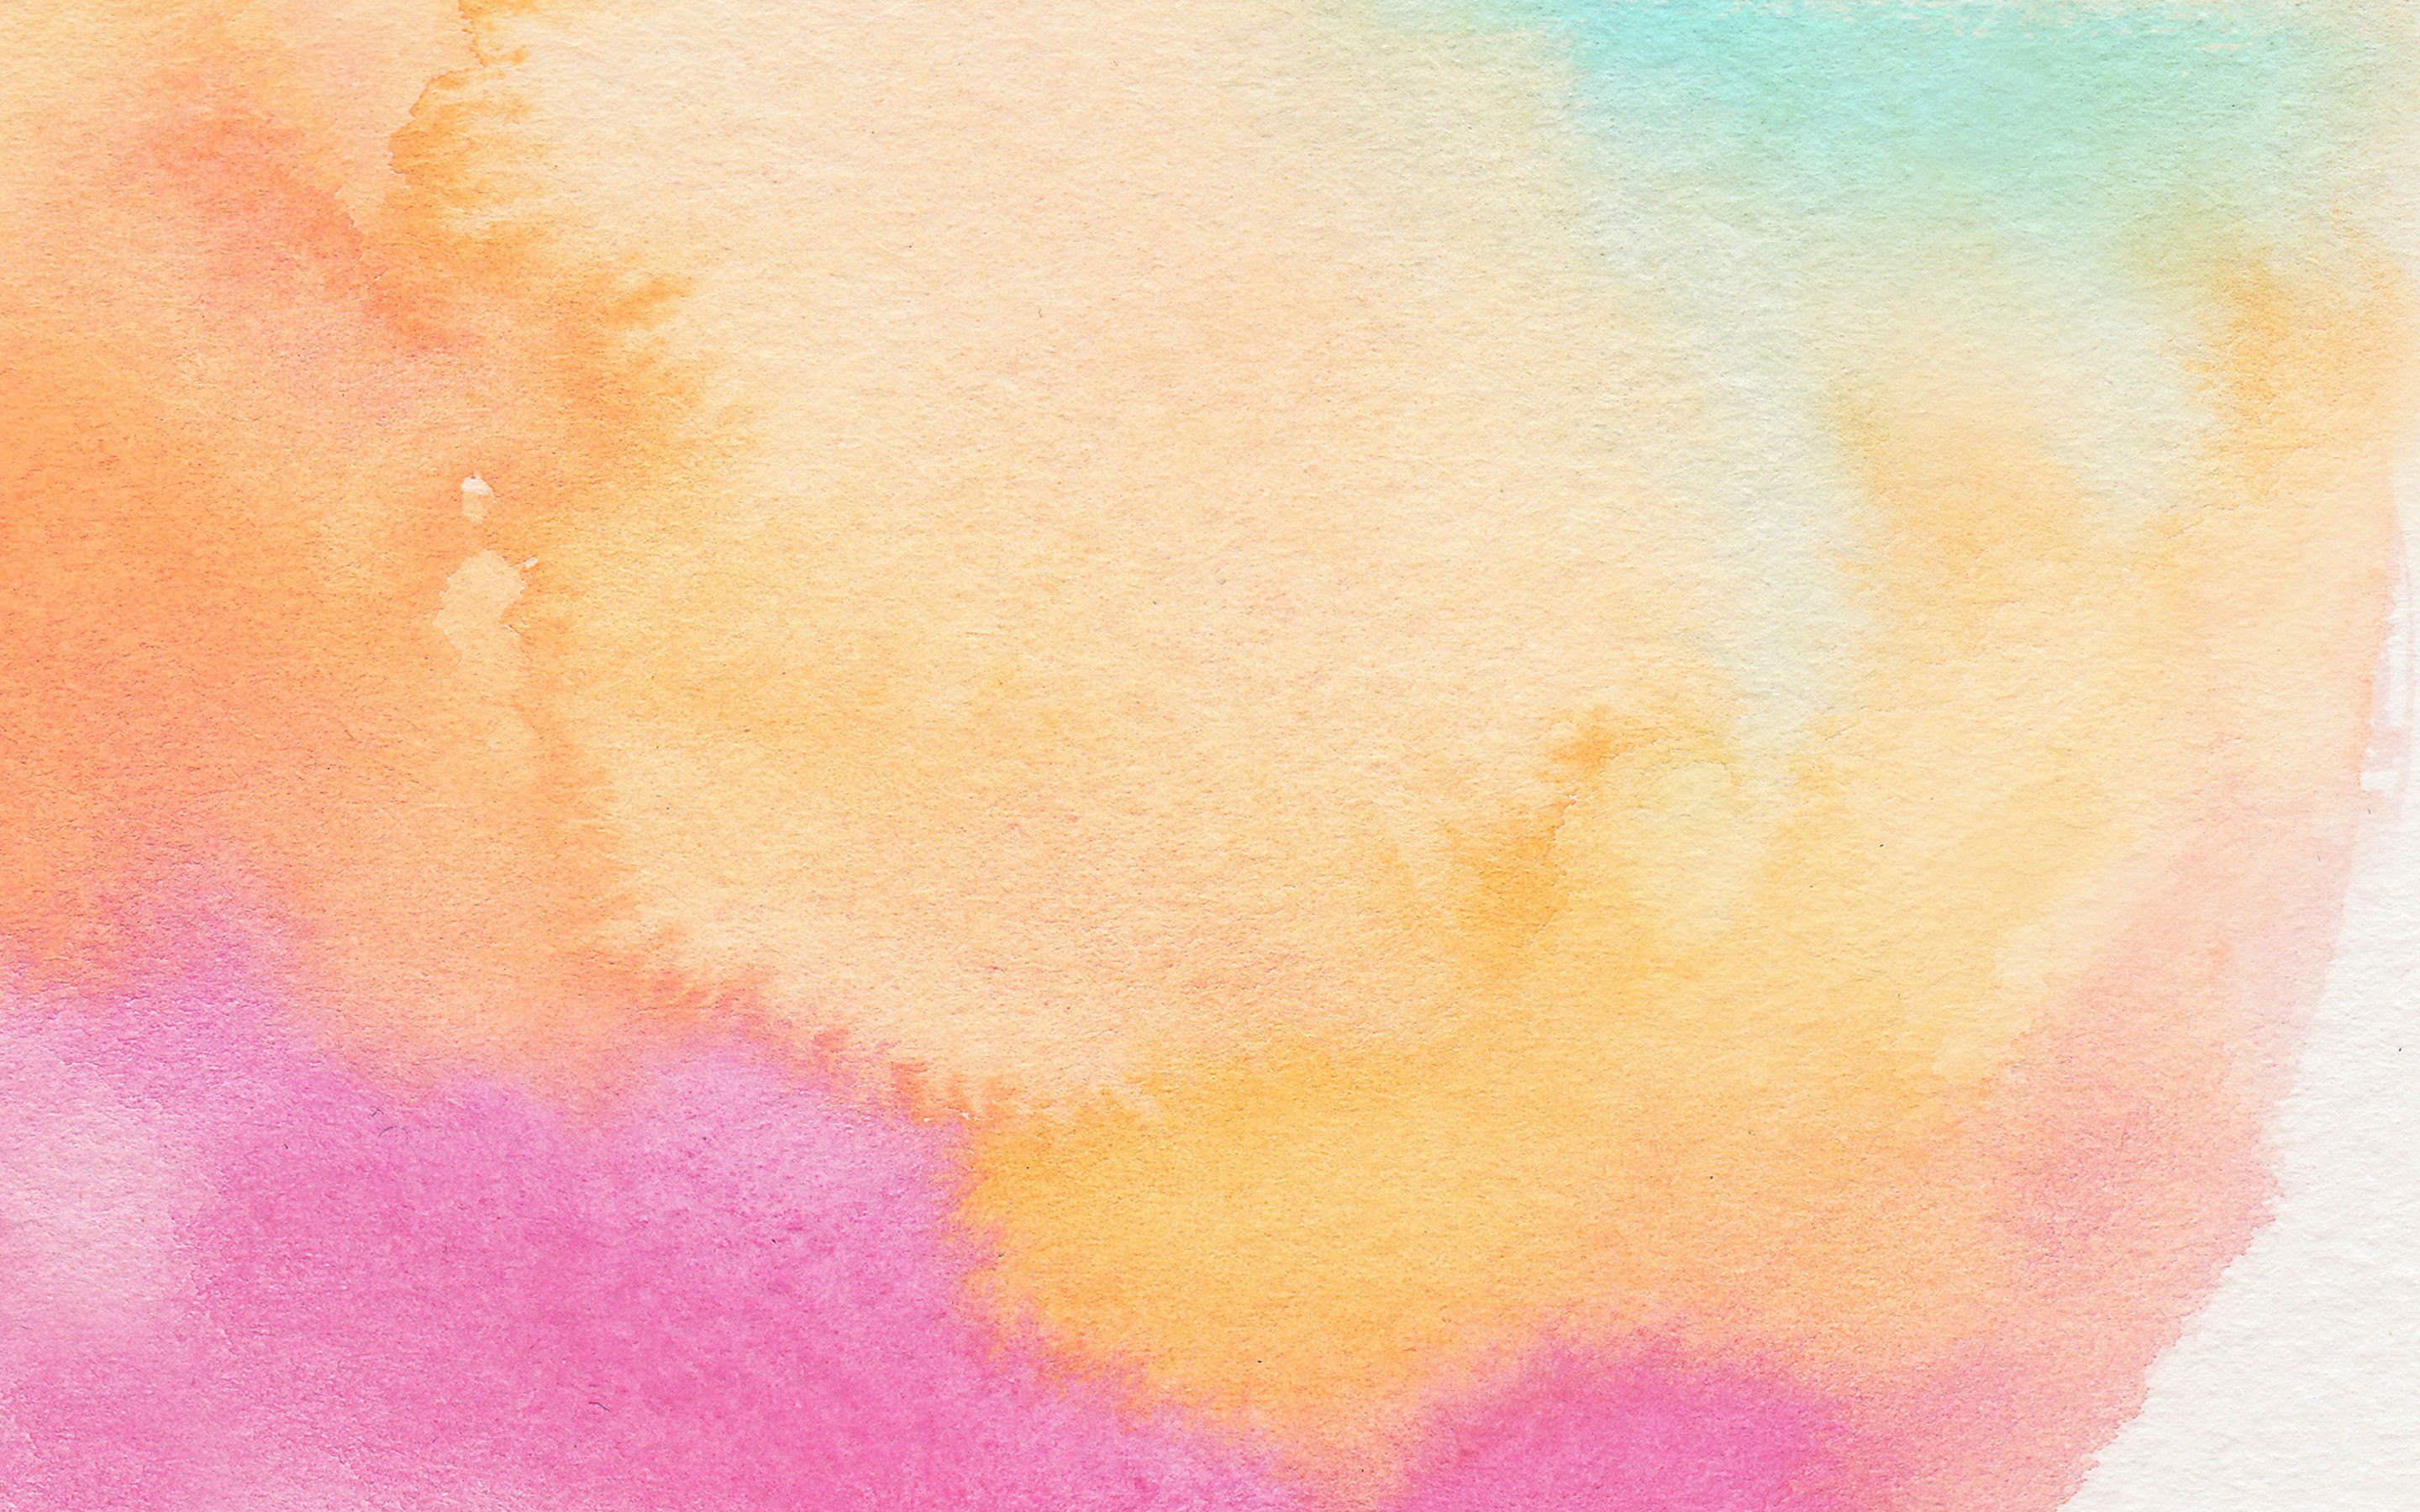 watercolor background tumblr 183�� download free beautiful